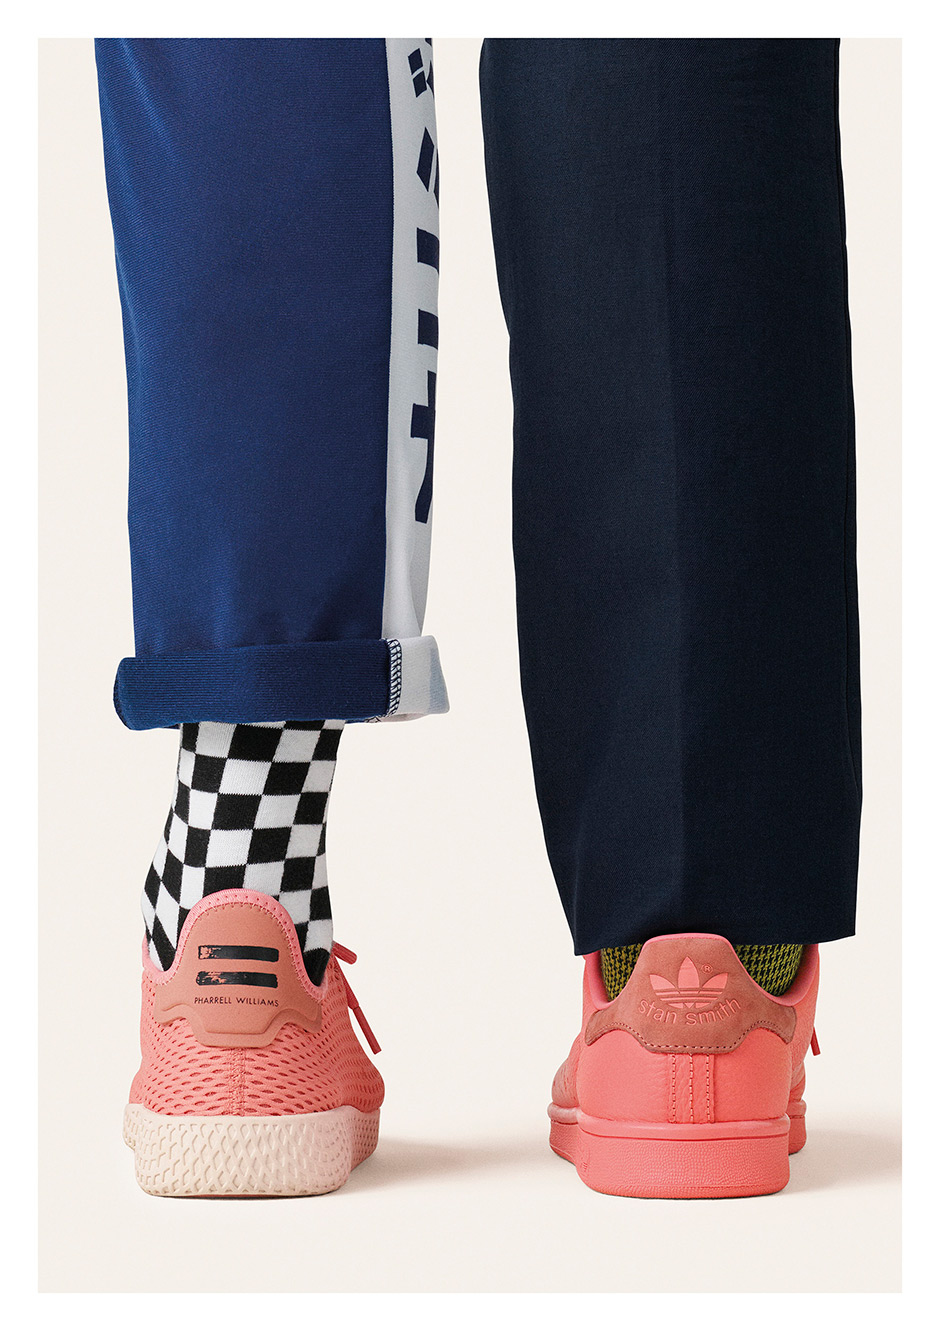 8fe67db21 ... Pharrell x adidas Tennis Hu Icons Pack and the adidas Originals Stan  Smith Icons Pack huge ...